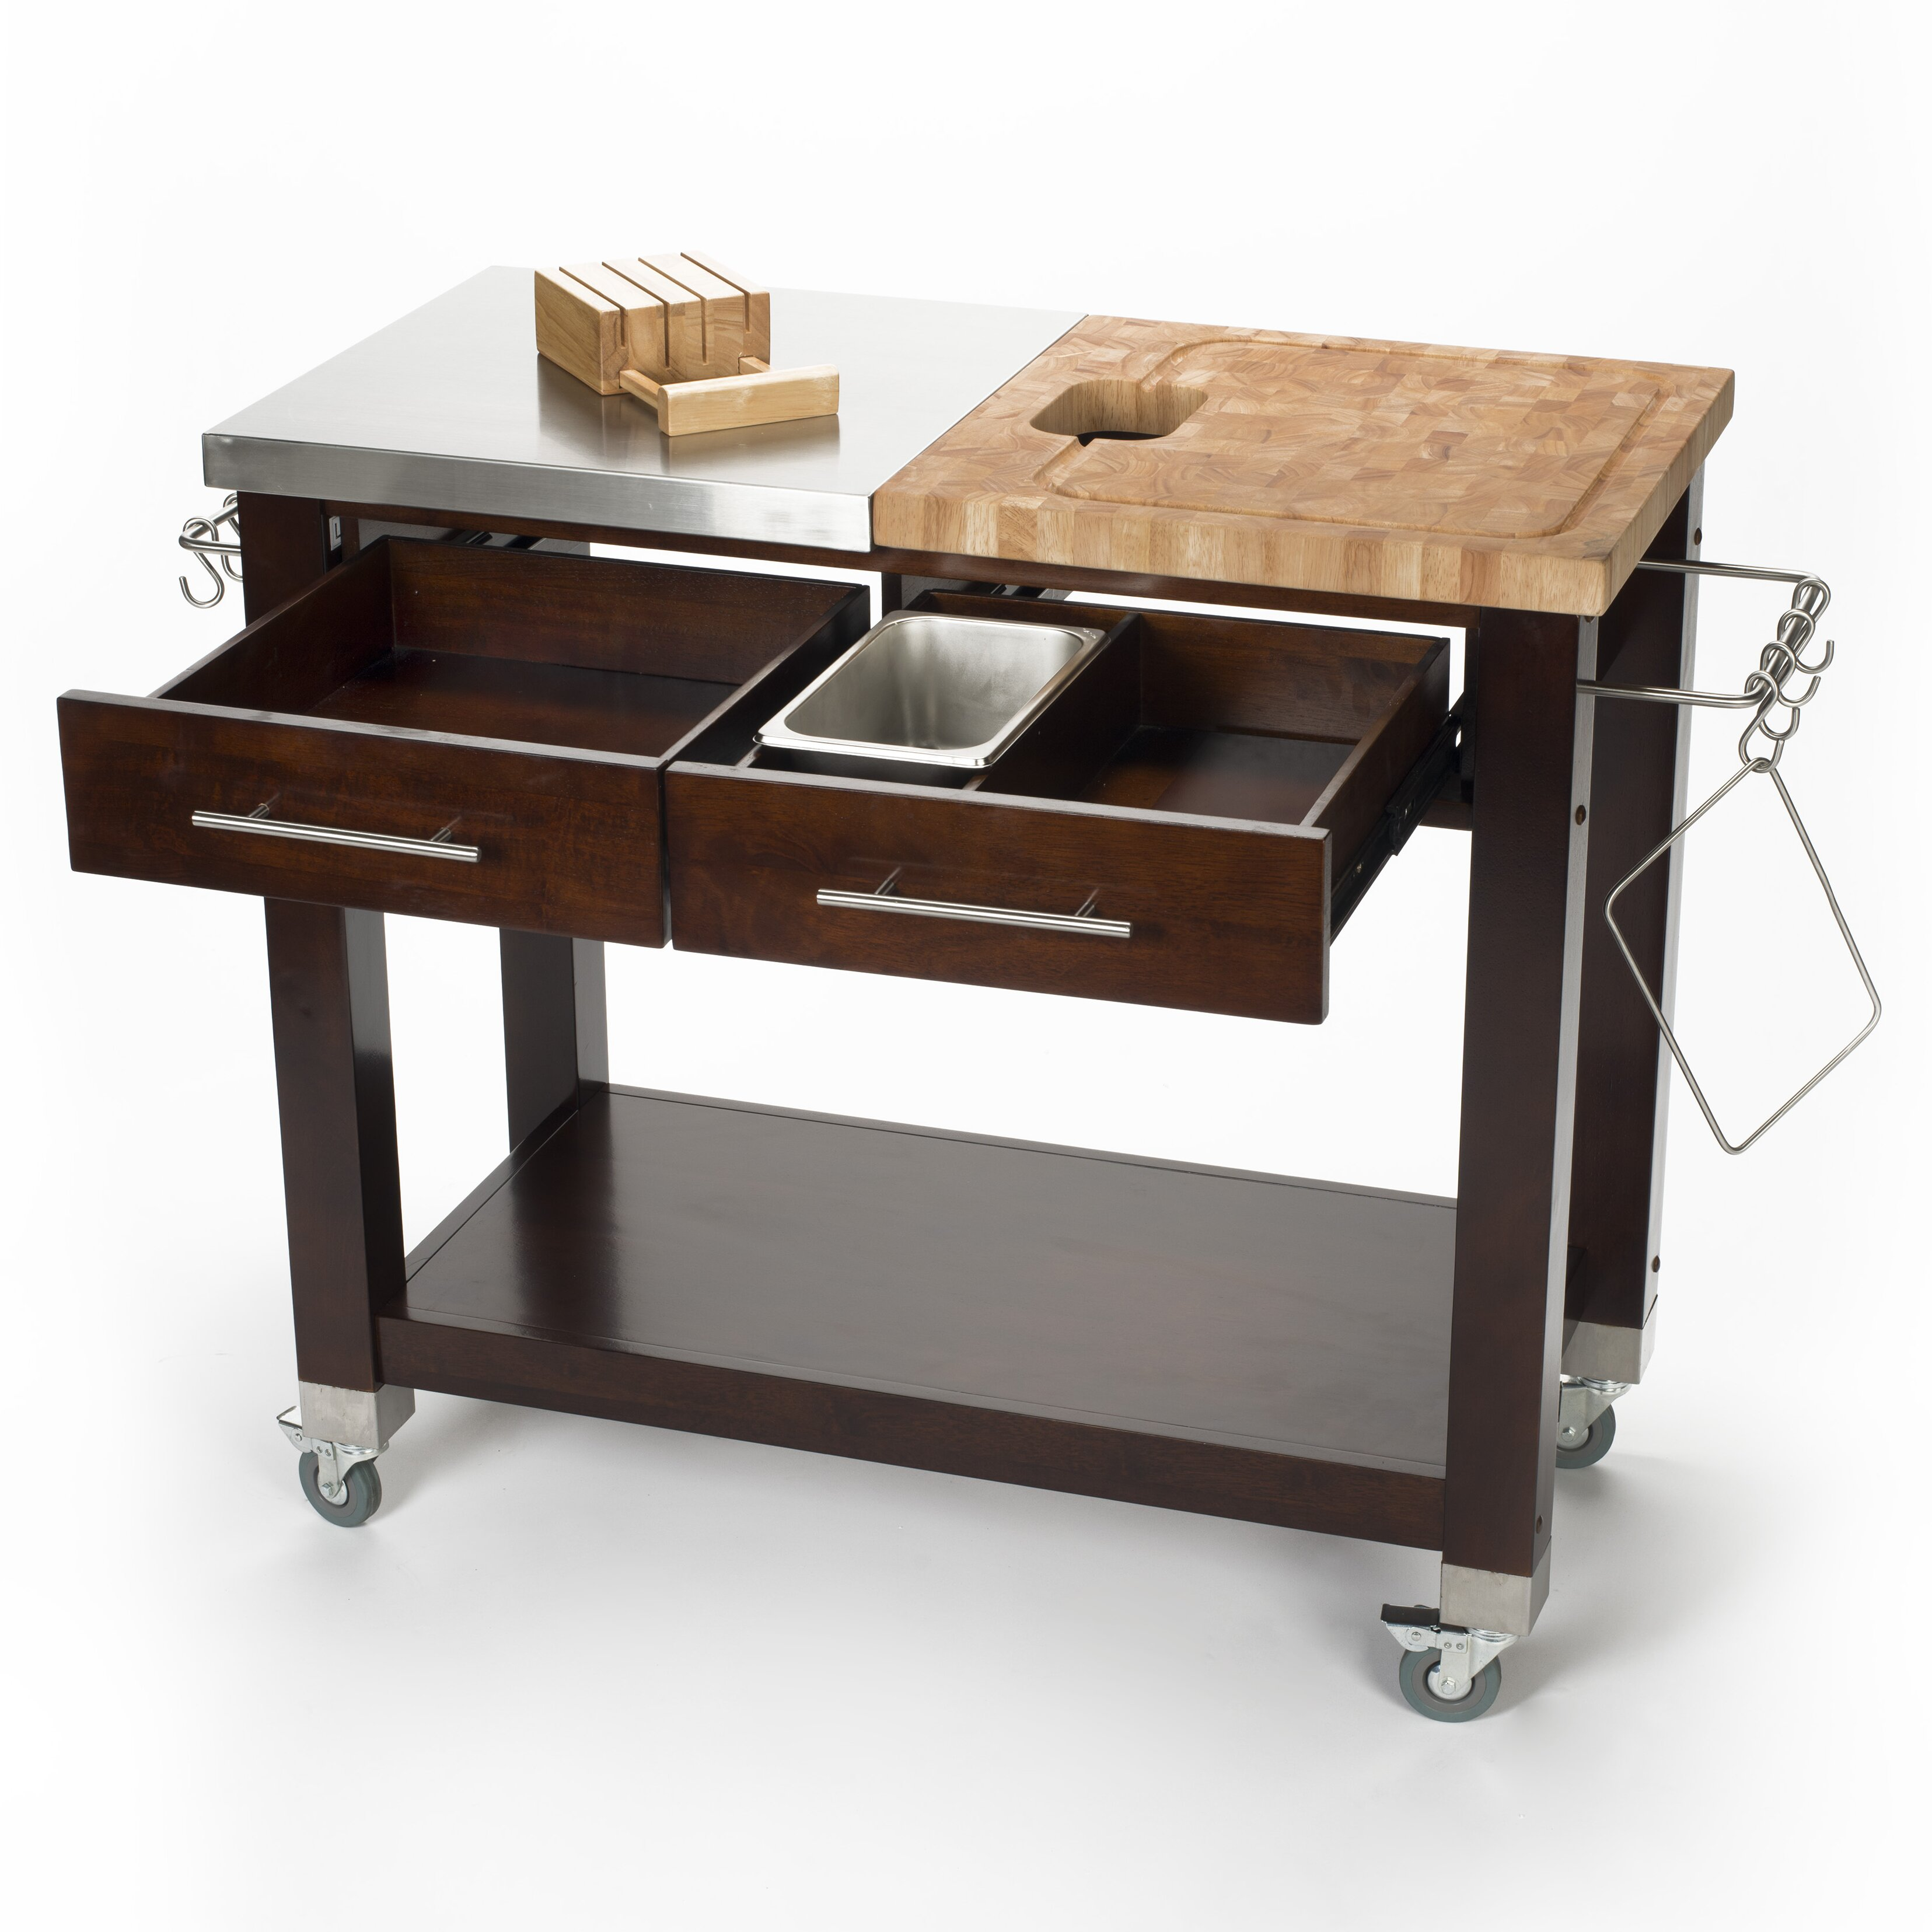 Chris & Chris Pro Chef Kitchen Island with Butcher Block Top & Reviews Wayfair